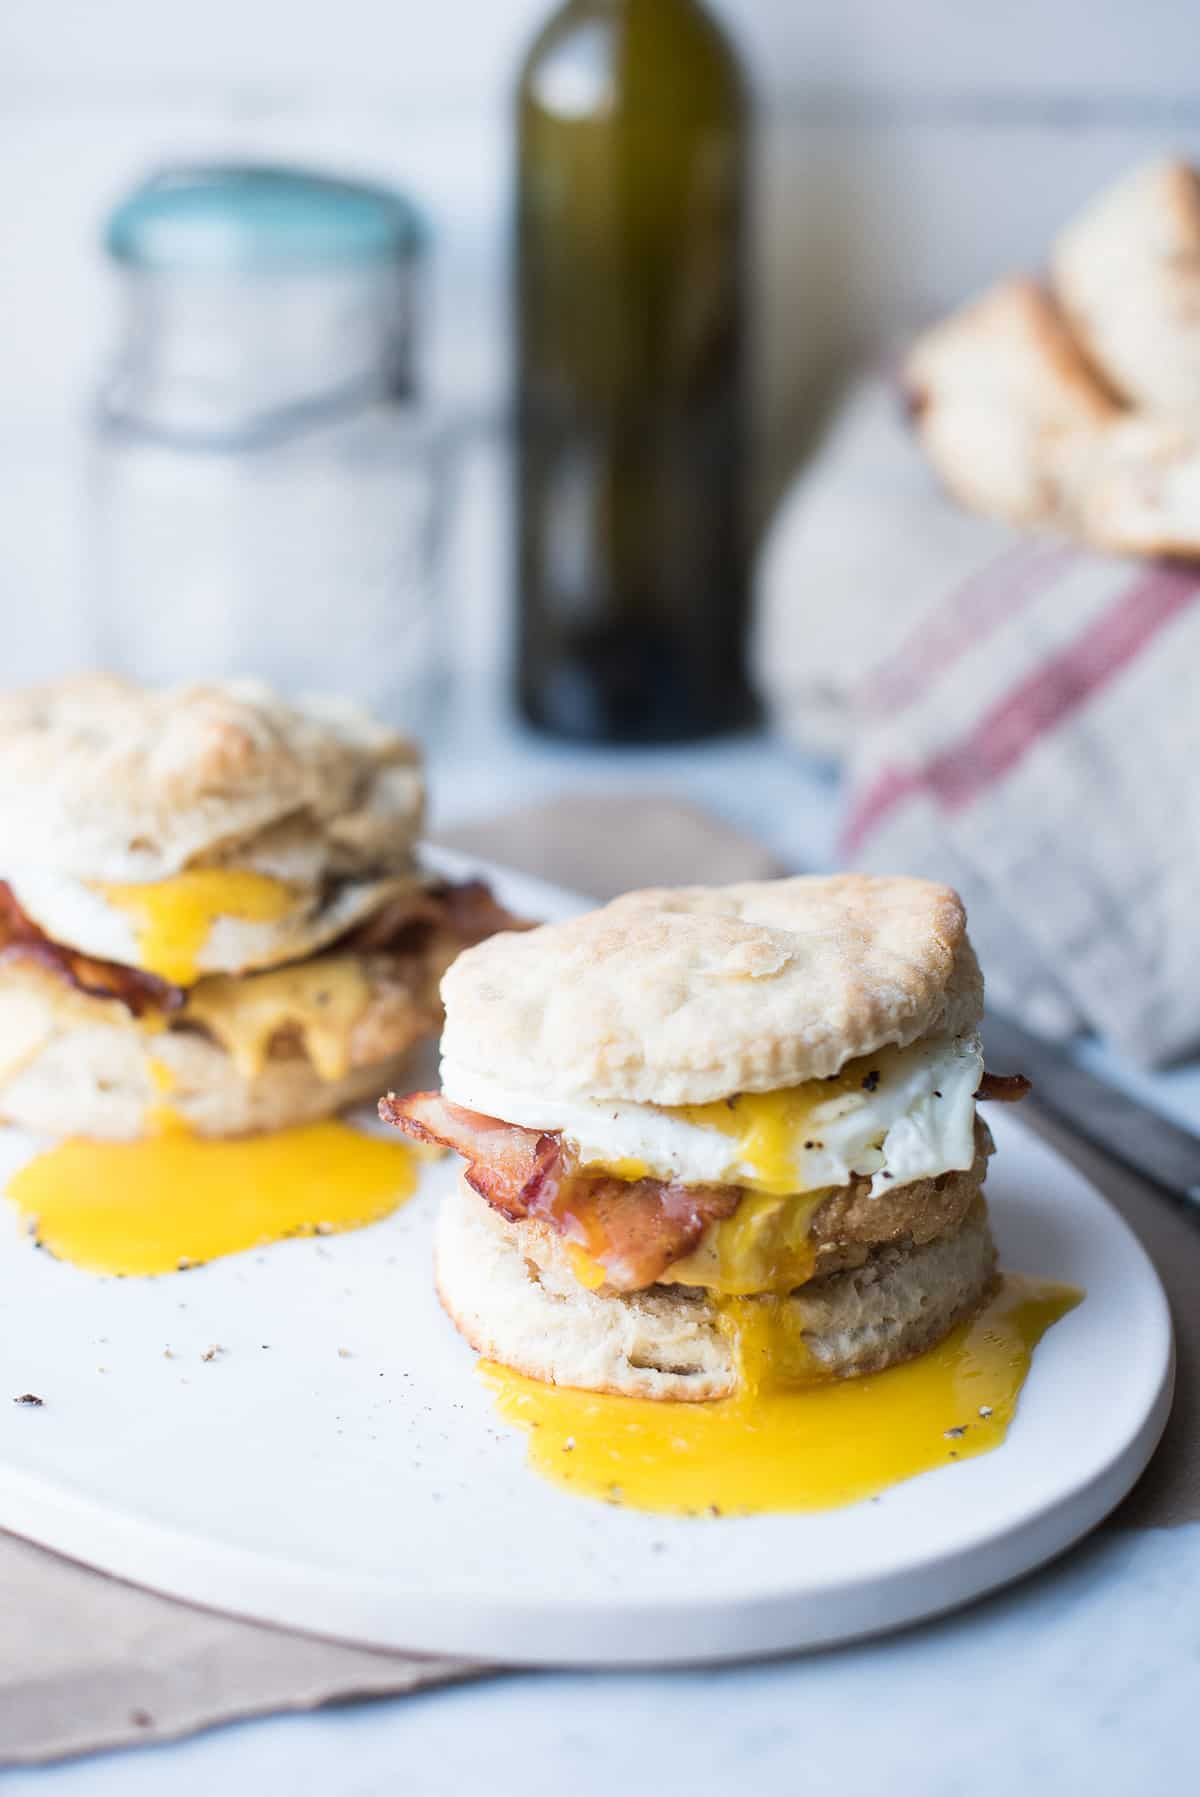 two biscuit sandwiches with runny yolks on white plate